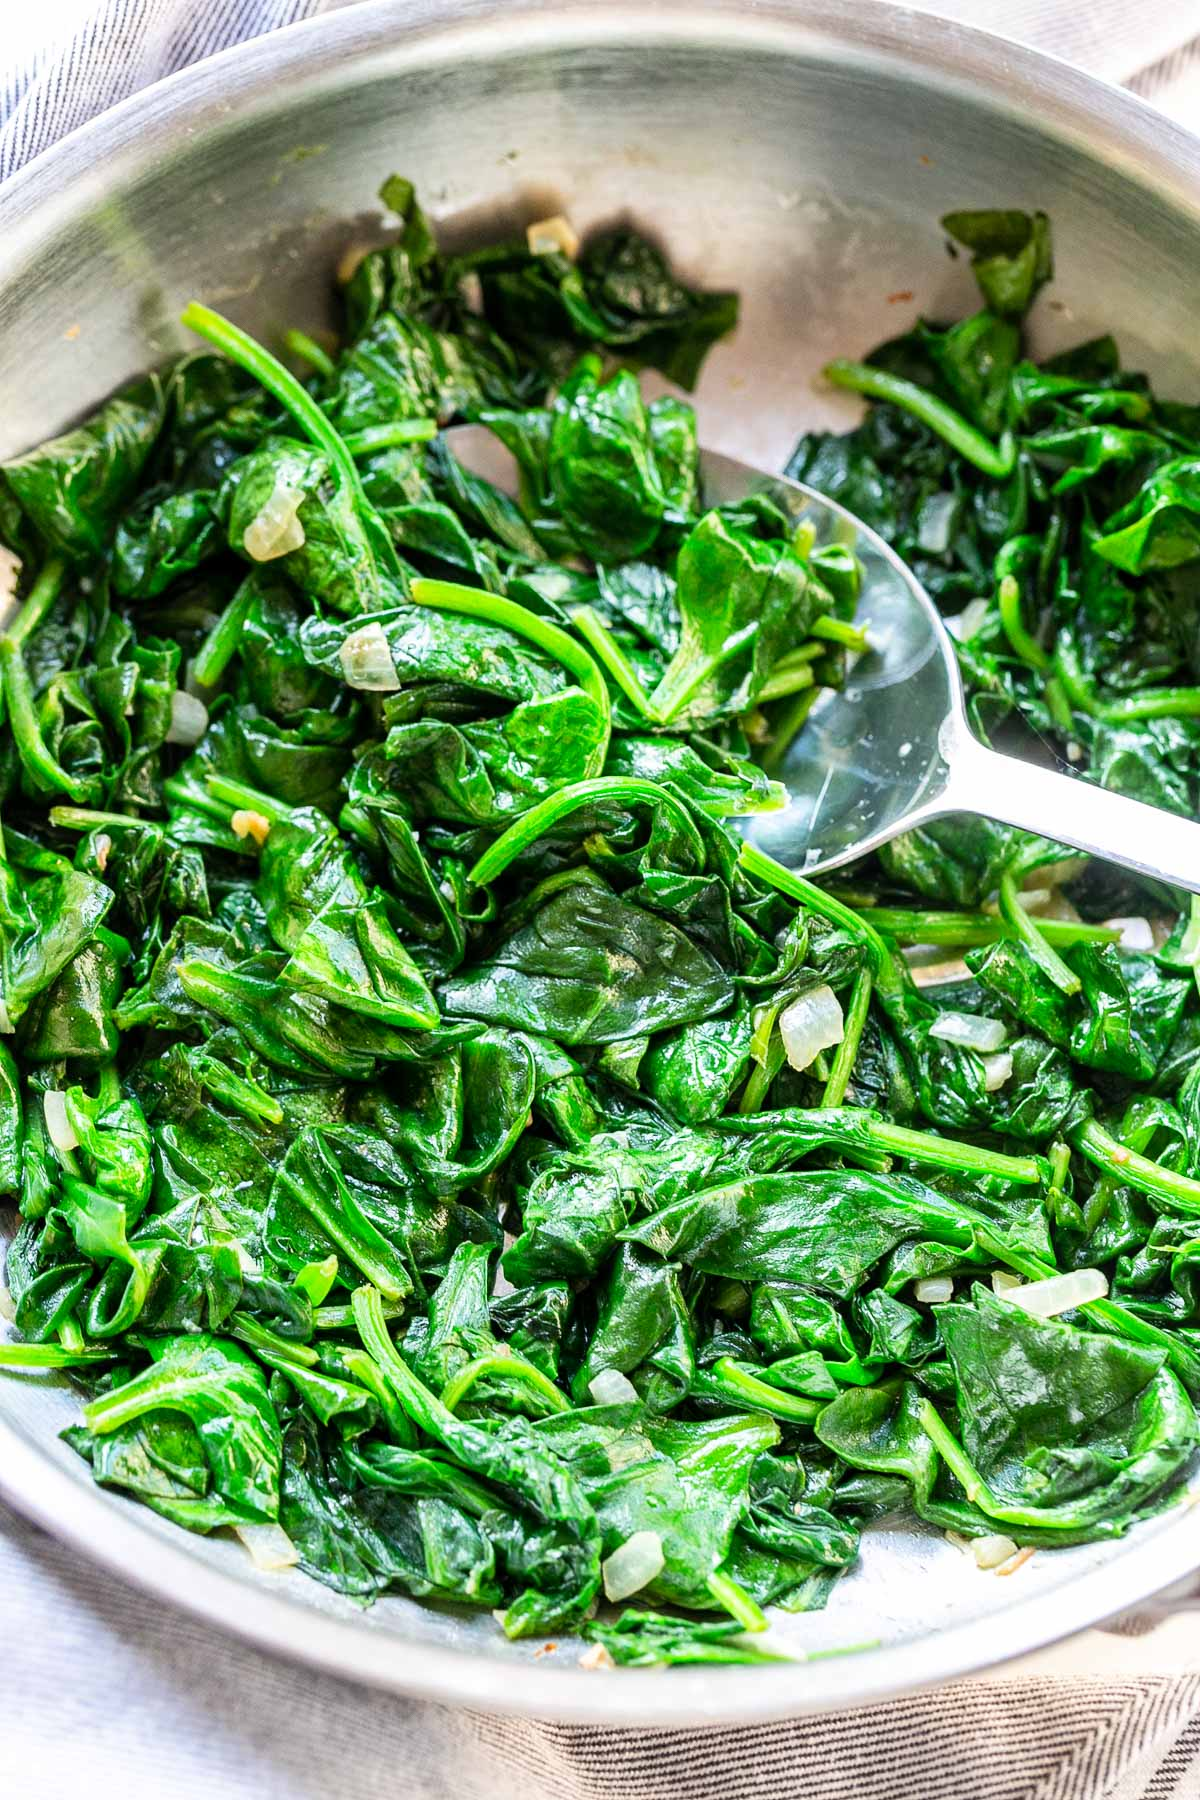 Looking for an easy way to cook spinach? Try this easy how to cook spinach recipe! Sauteed in a big skillet and serve as a tasty side dish. Visit fastfoodbistro.com for the full recipe #fastfoodbistro #spinach #howtocookspinach #sidedish #vegetablesidedish